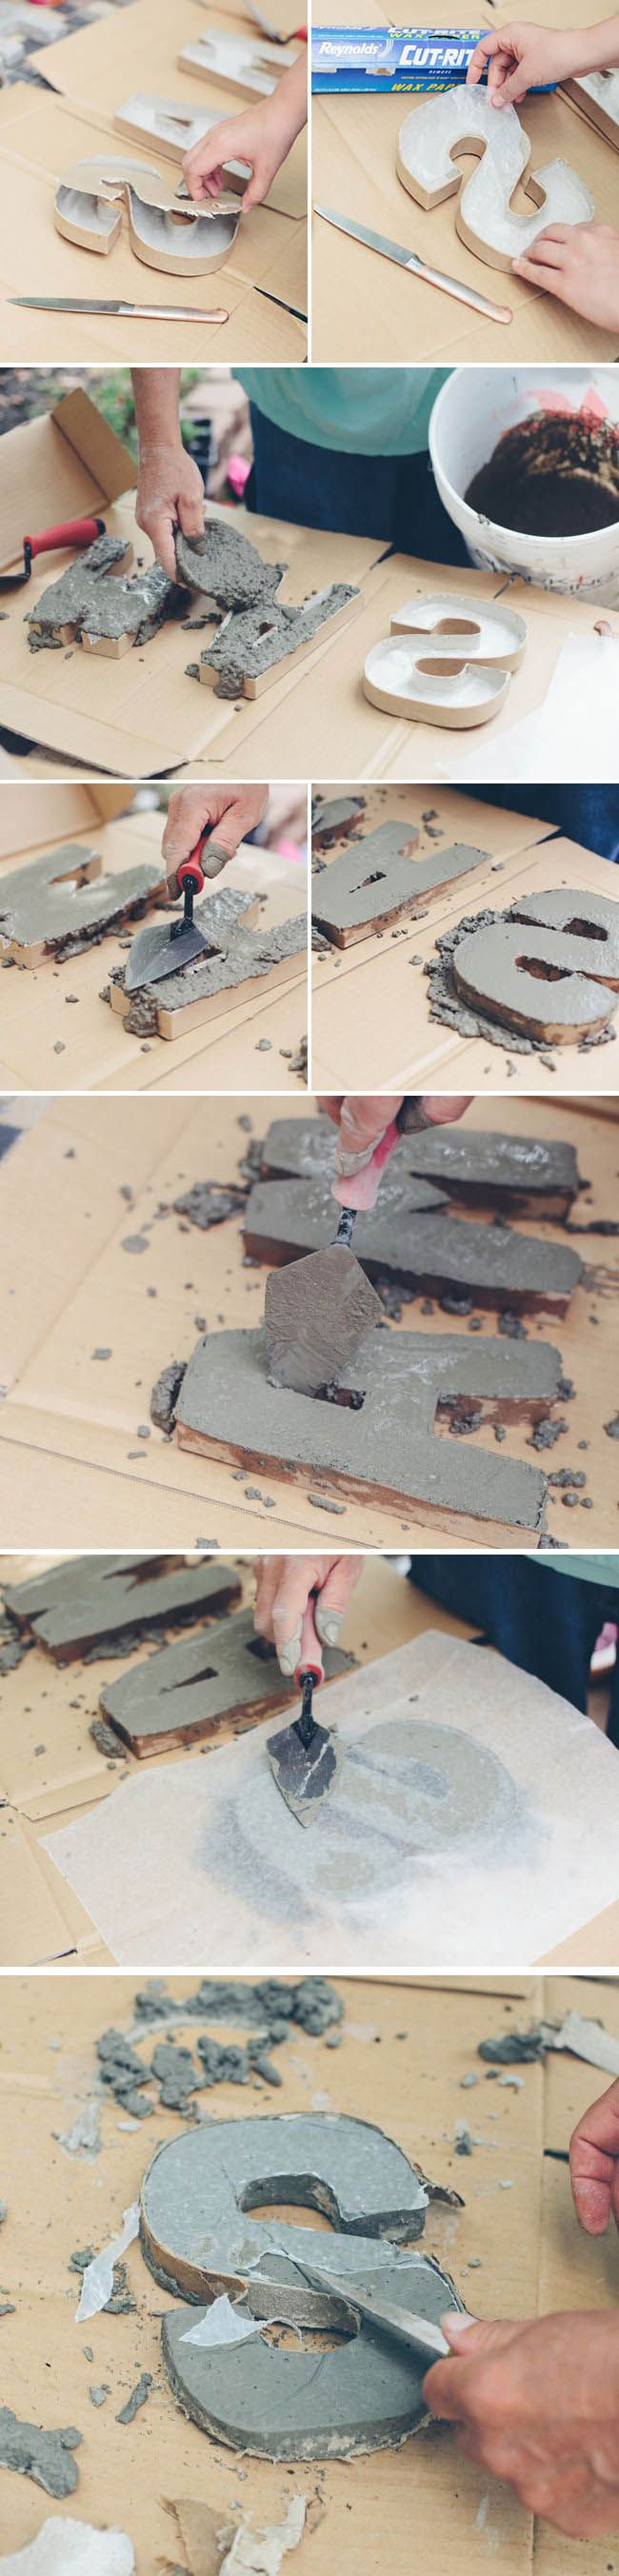 How to make cement letters | Fast dry cement Cardboard letter shapes Wax paper